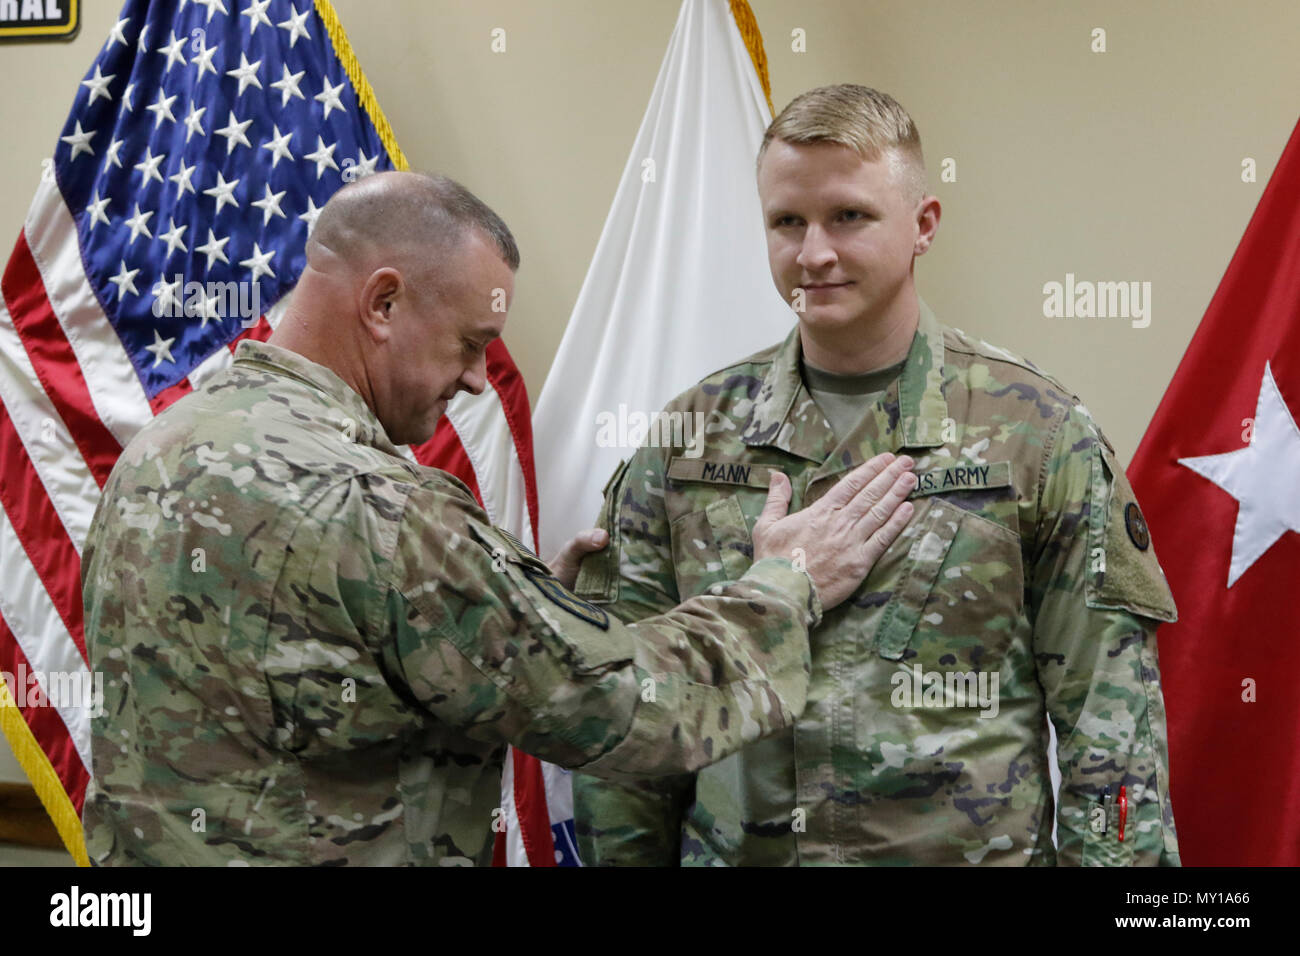 Brig. Gen. Robert D. Harter, 316th Sustainment Command (Expeditionary) commanding general, places the rank of 1st Lieutenant on Christopher Mann during a promotion ceremony at Camp Arifjan, Kuwait, Dec. 31, 2016. (U.S. Army Photo by Maj. Julius Penn) - Stock Image